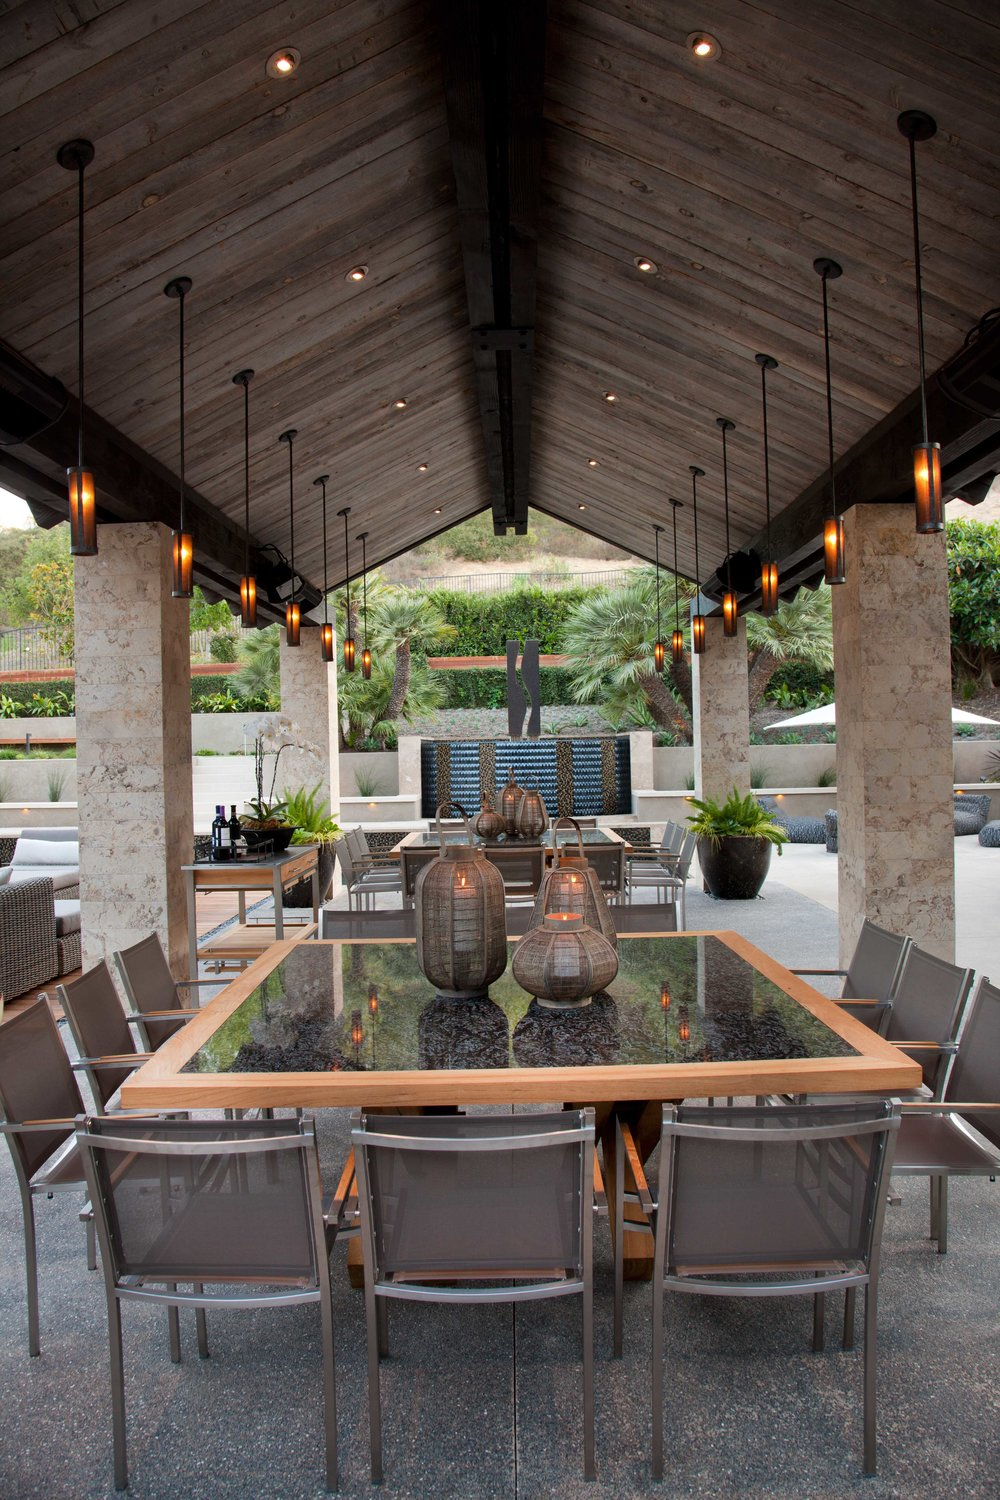 Two rows of custom Hammerton LA2102 pendants in an outdoor living space designed by Lori Gentile Interior Design | Solanan Beach, CA